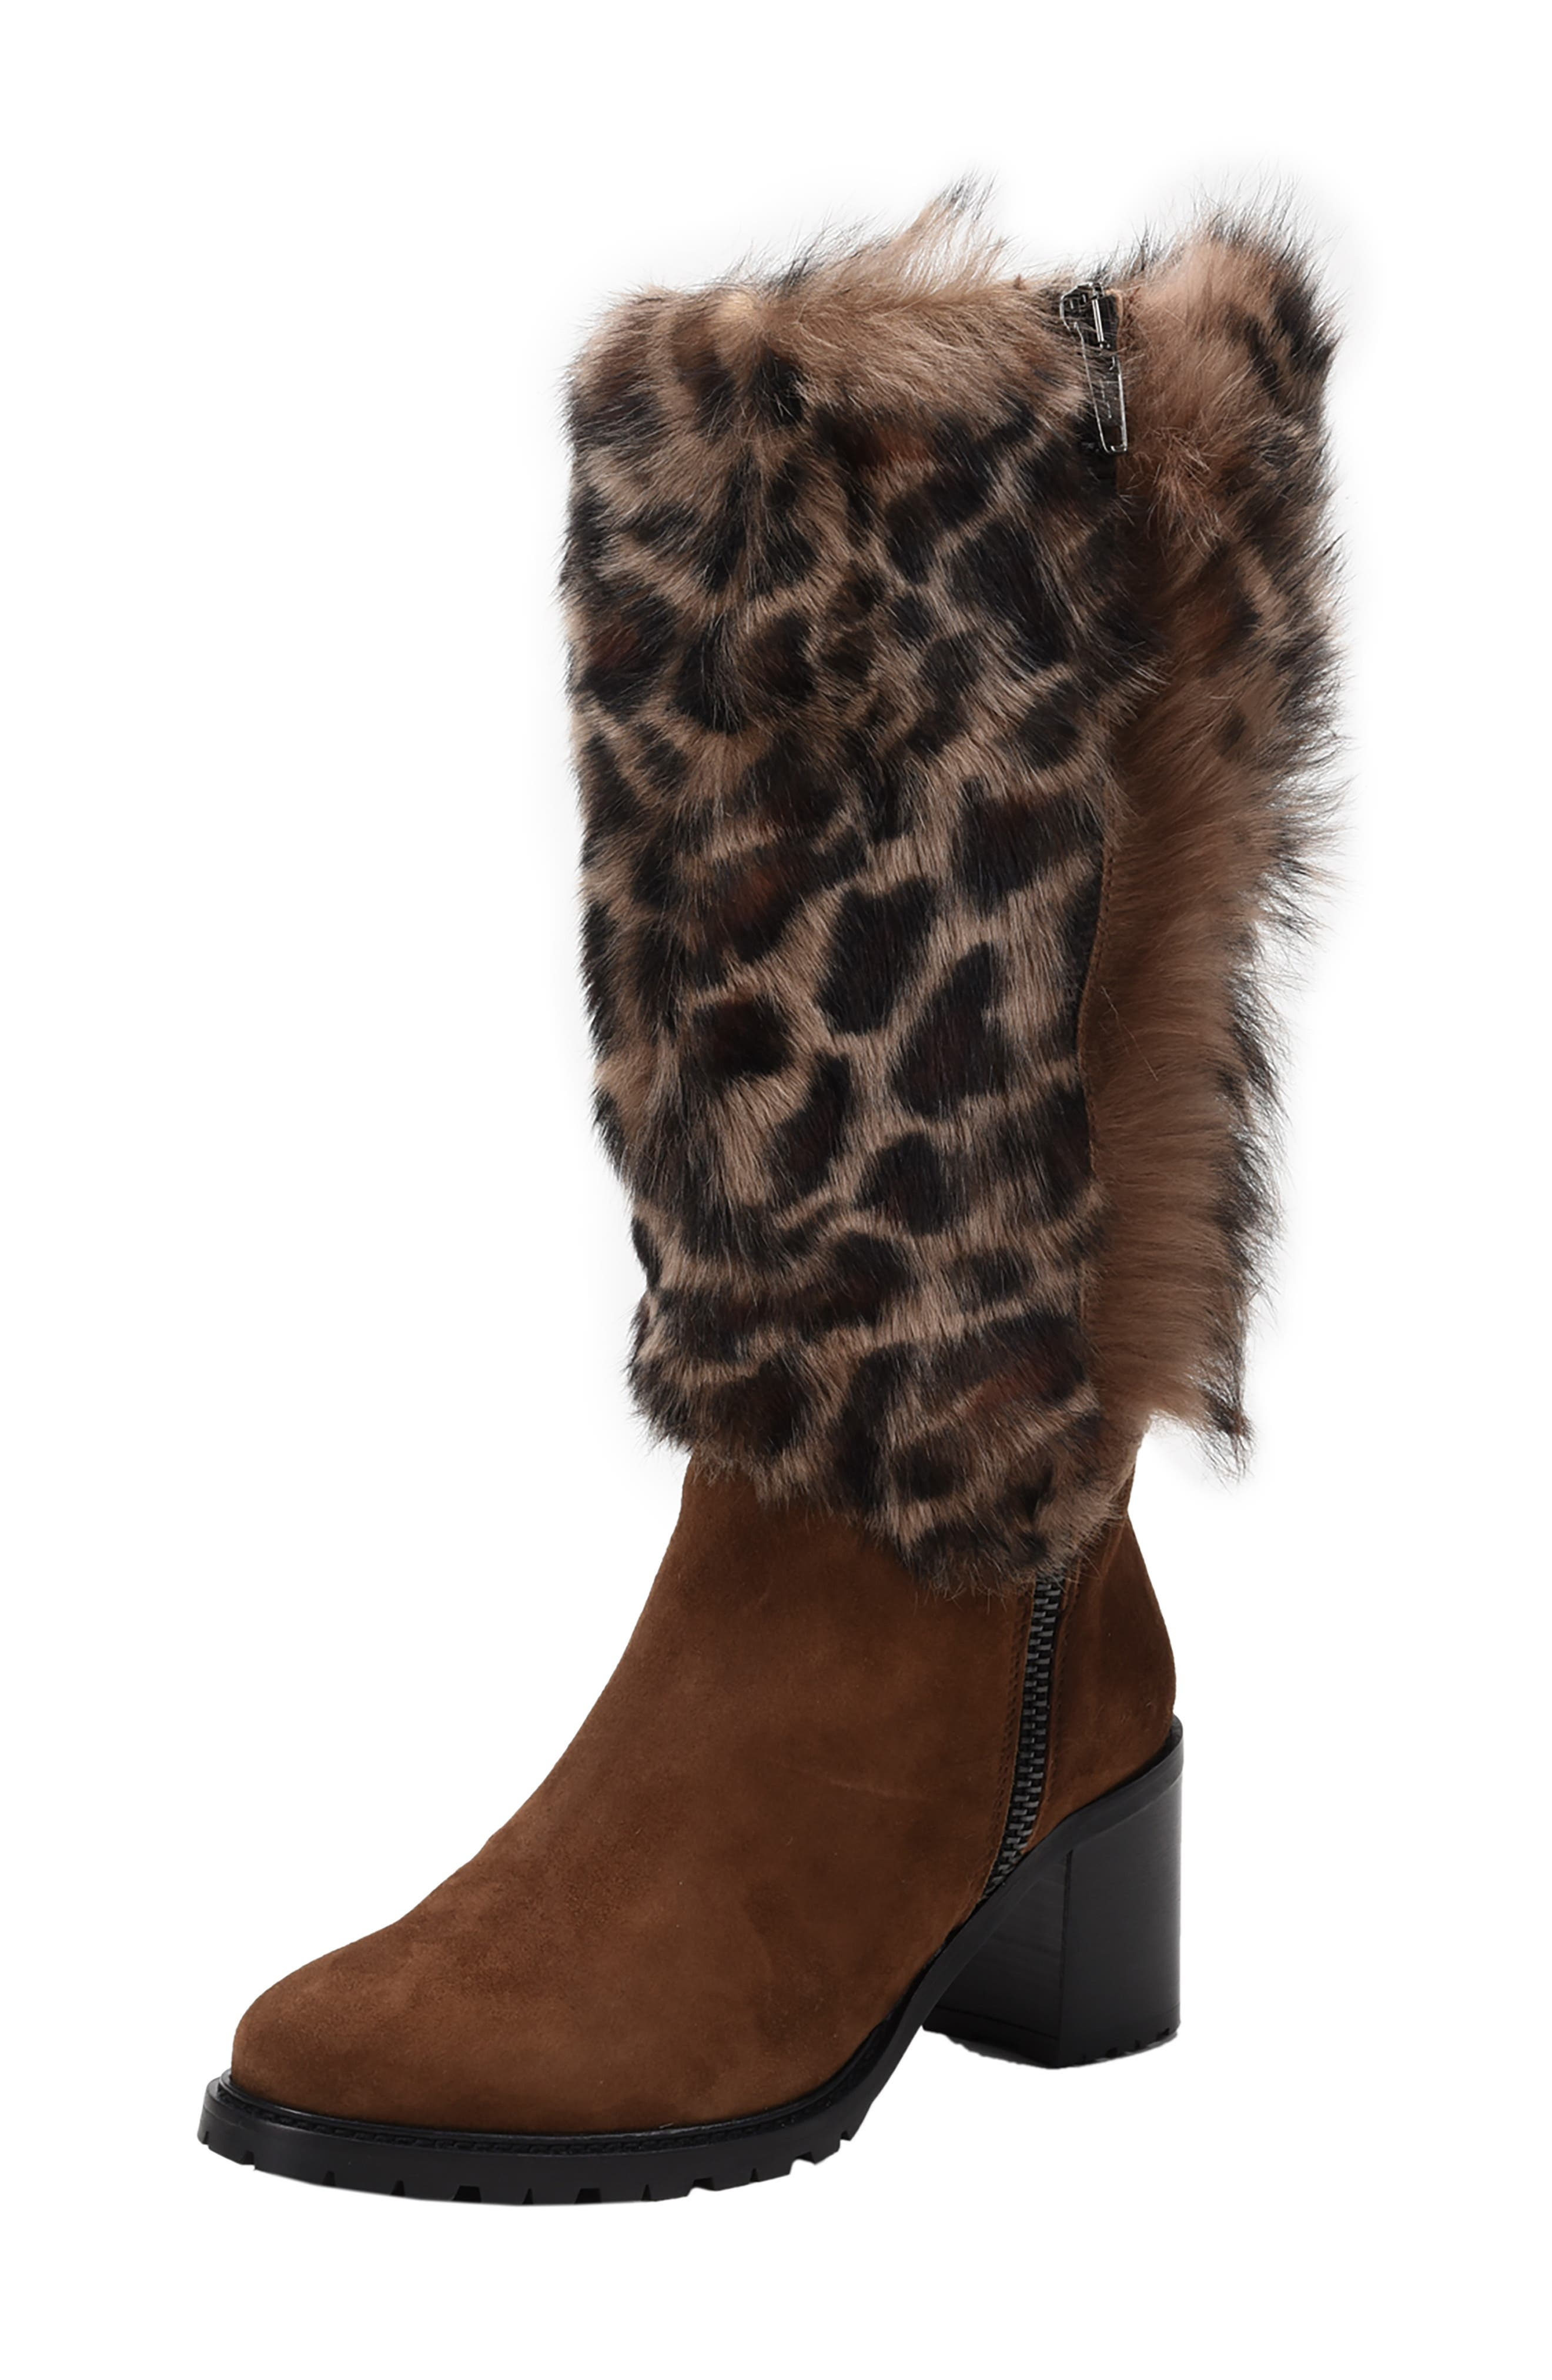 Weatherproof Genuine Shearling Boot,                             Main thumbnail 1, color,                             LEOPARD LEATHER